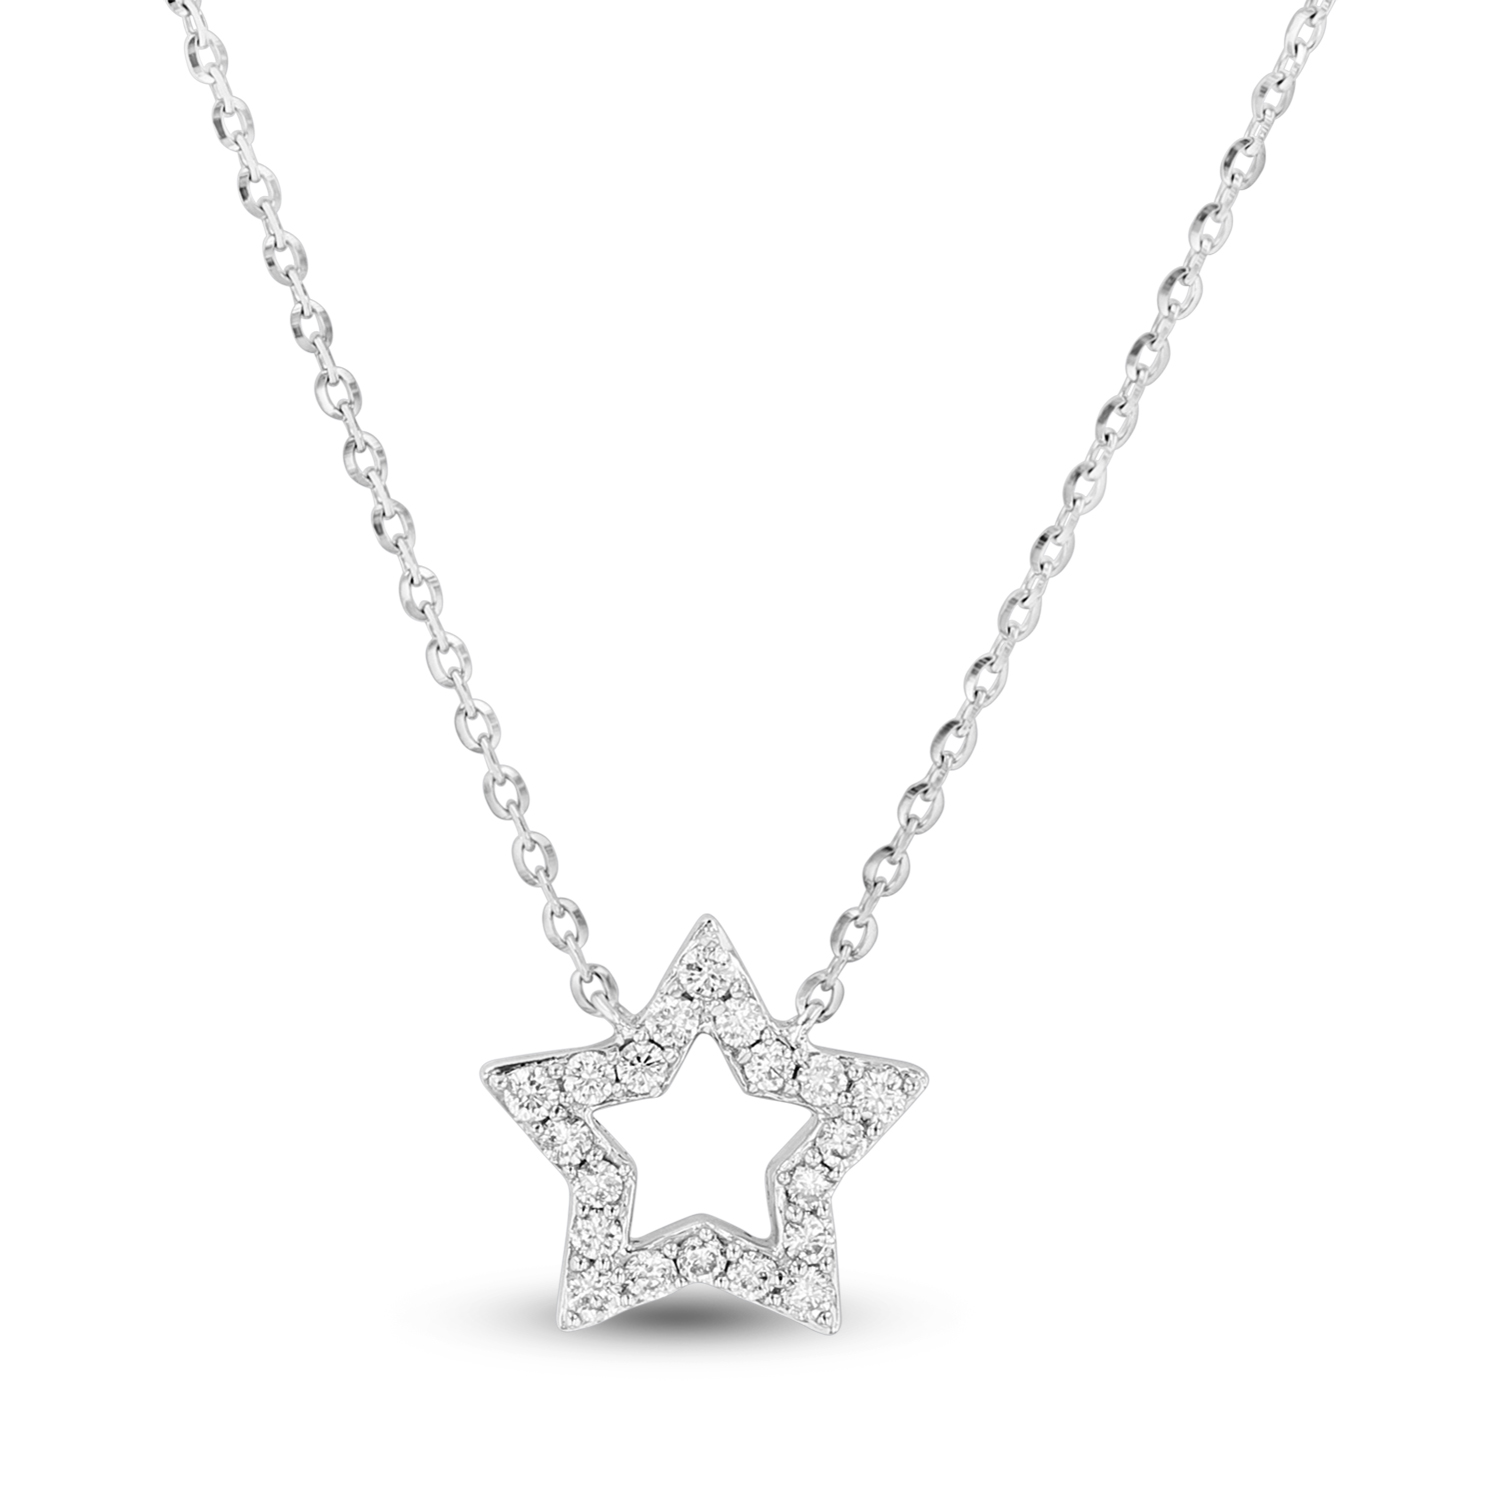 View 0.15ctw Diamond Star Shaped Pendant in 14k White Gold